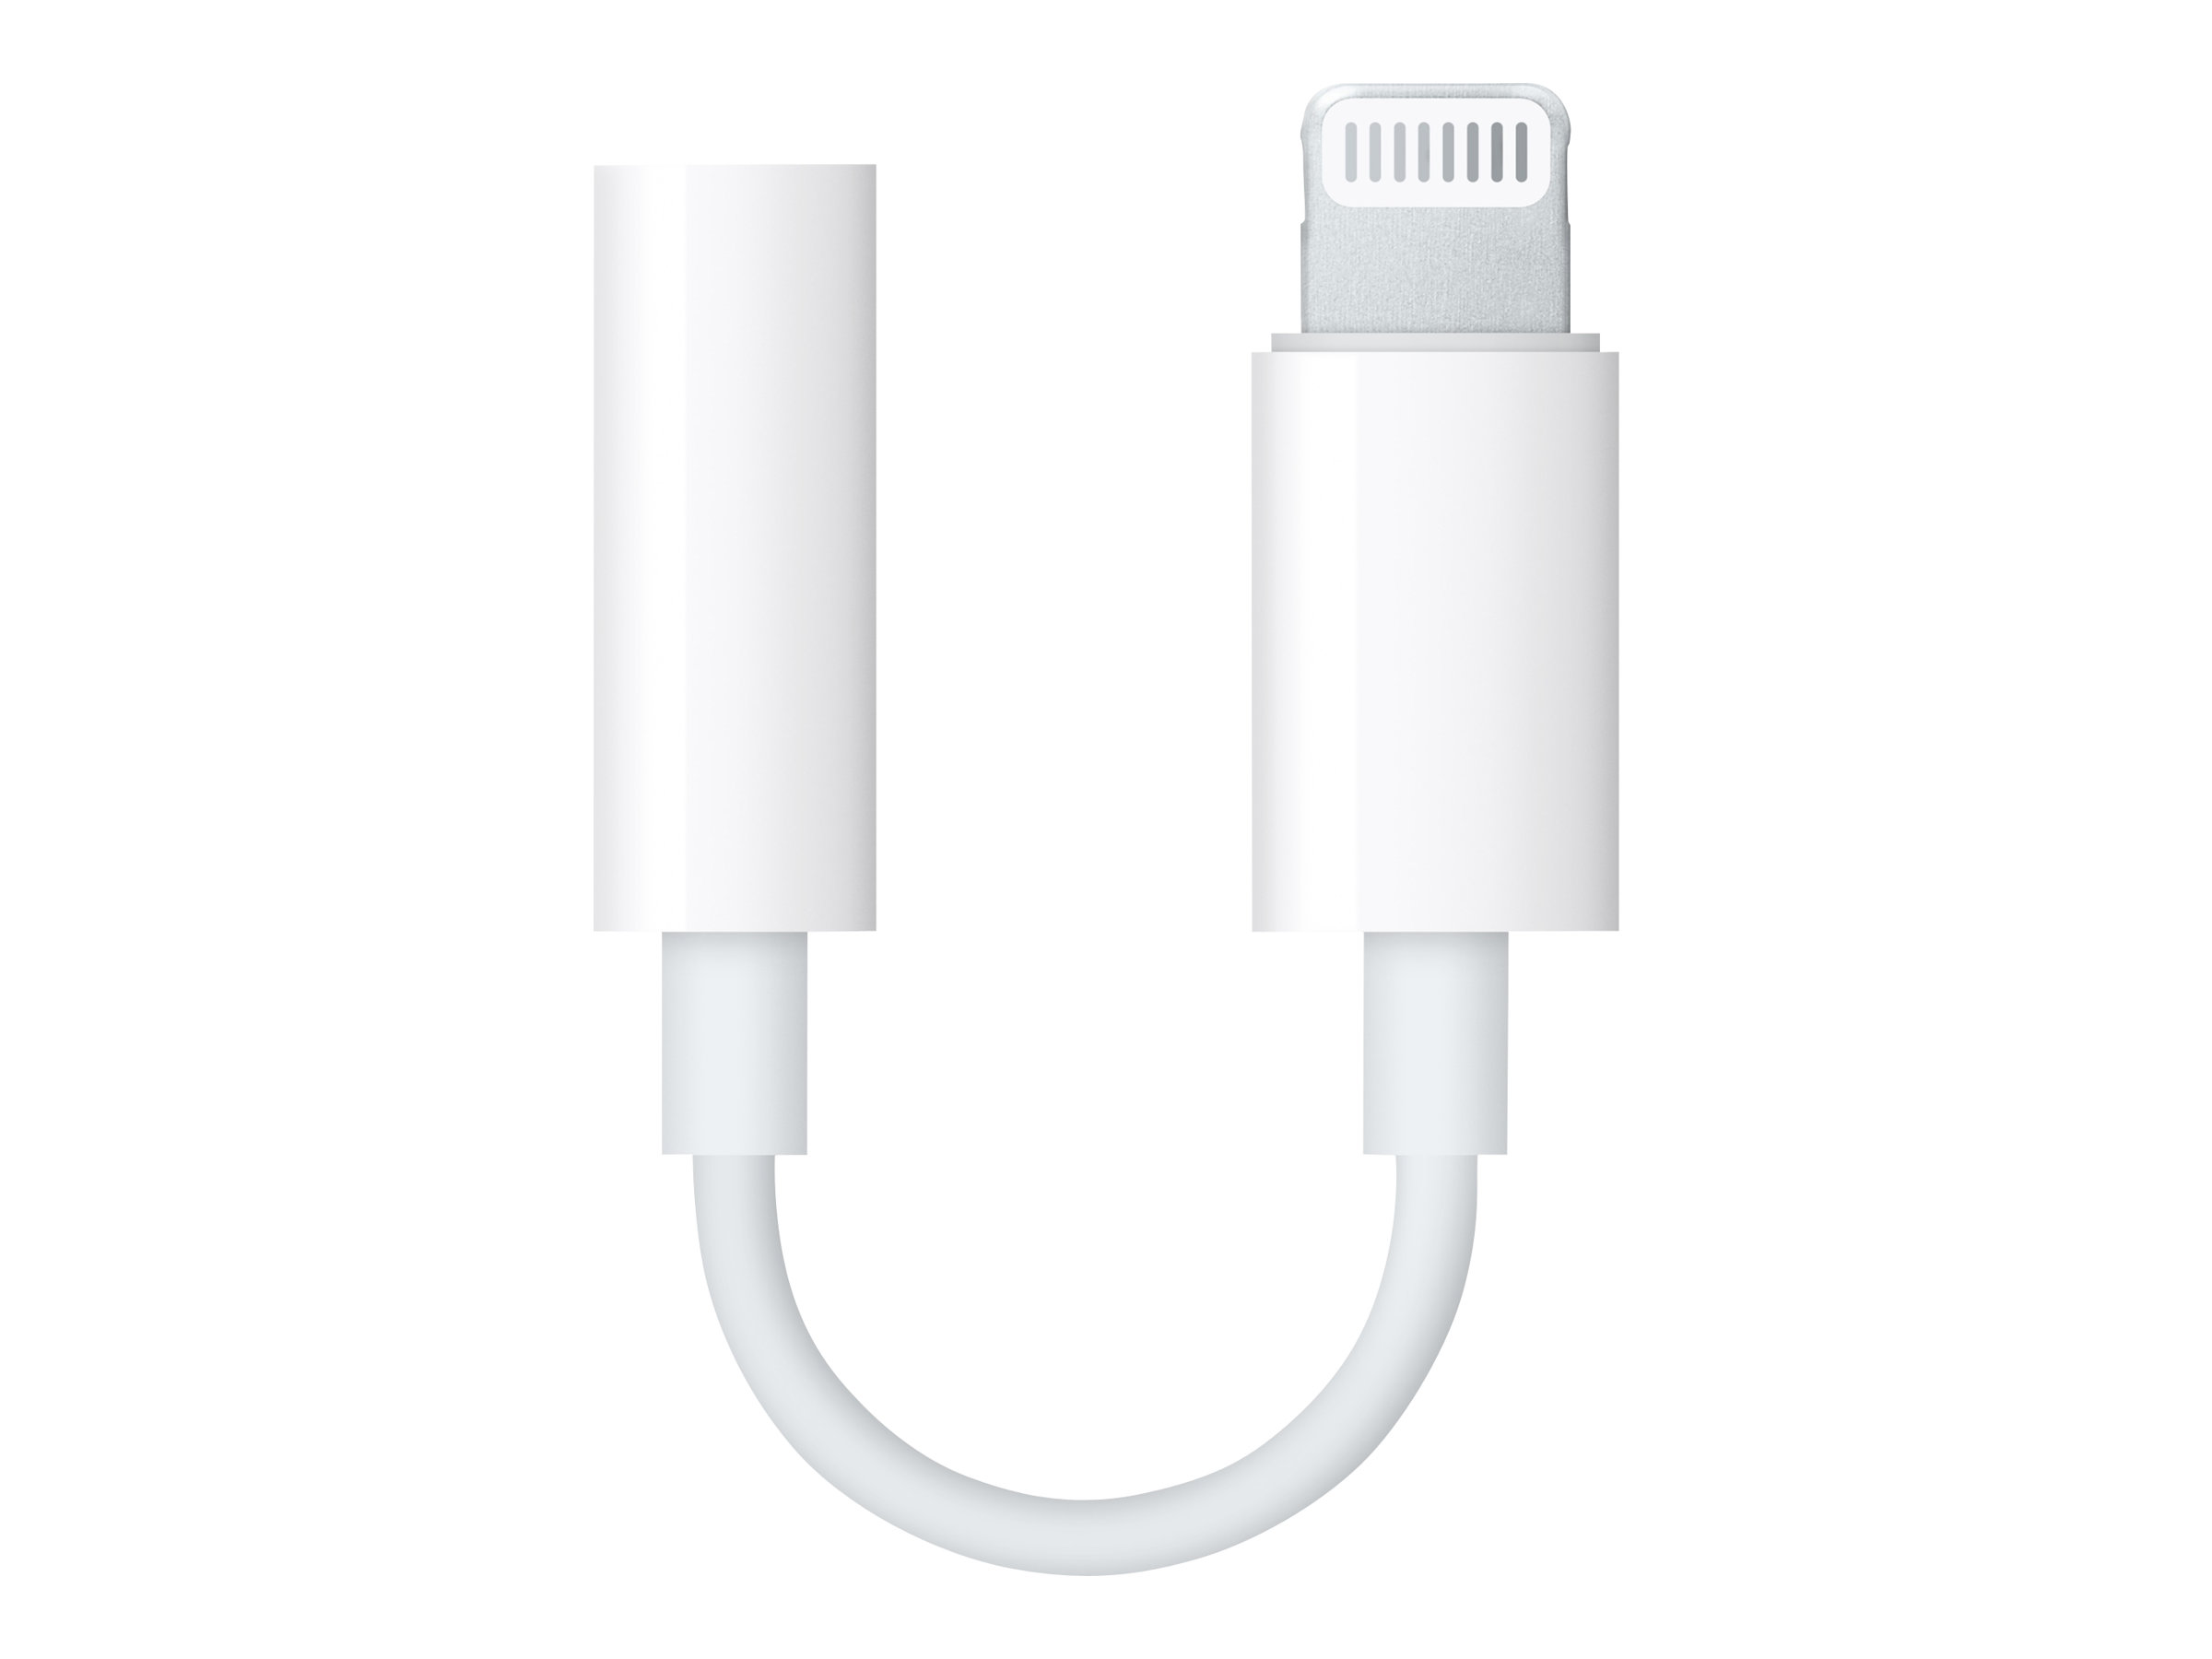 APPLE LIGHTNING TO 3.5 MM HEADPHONE JACK ADAPTER A